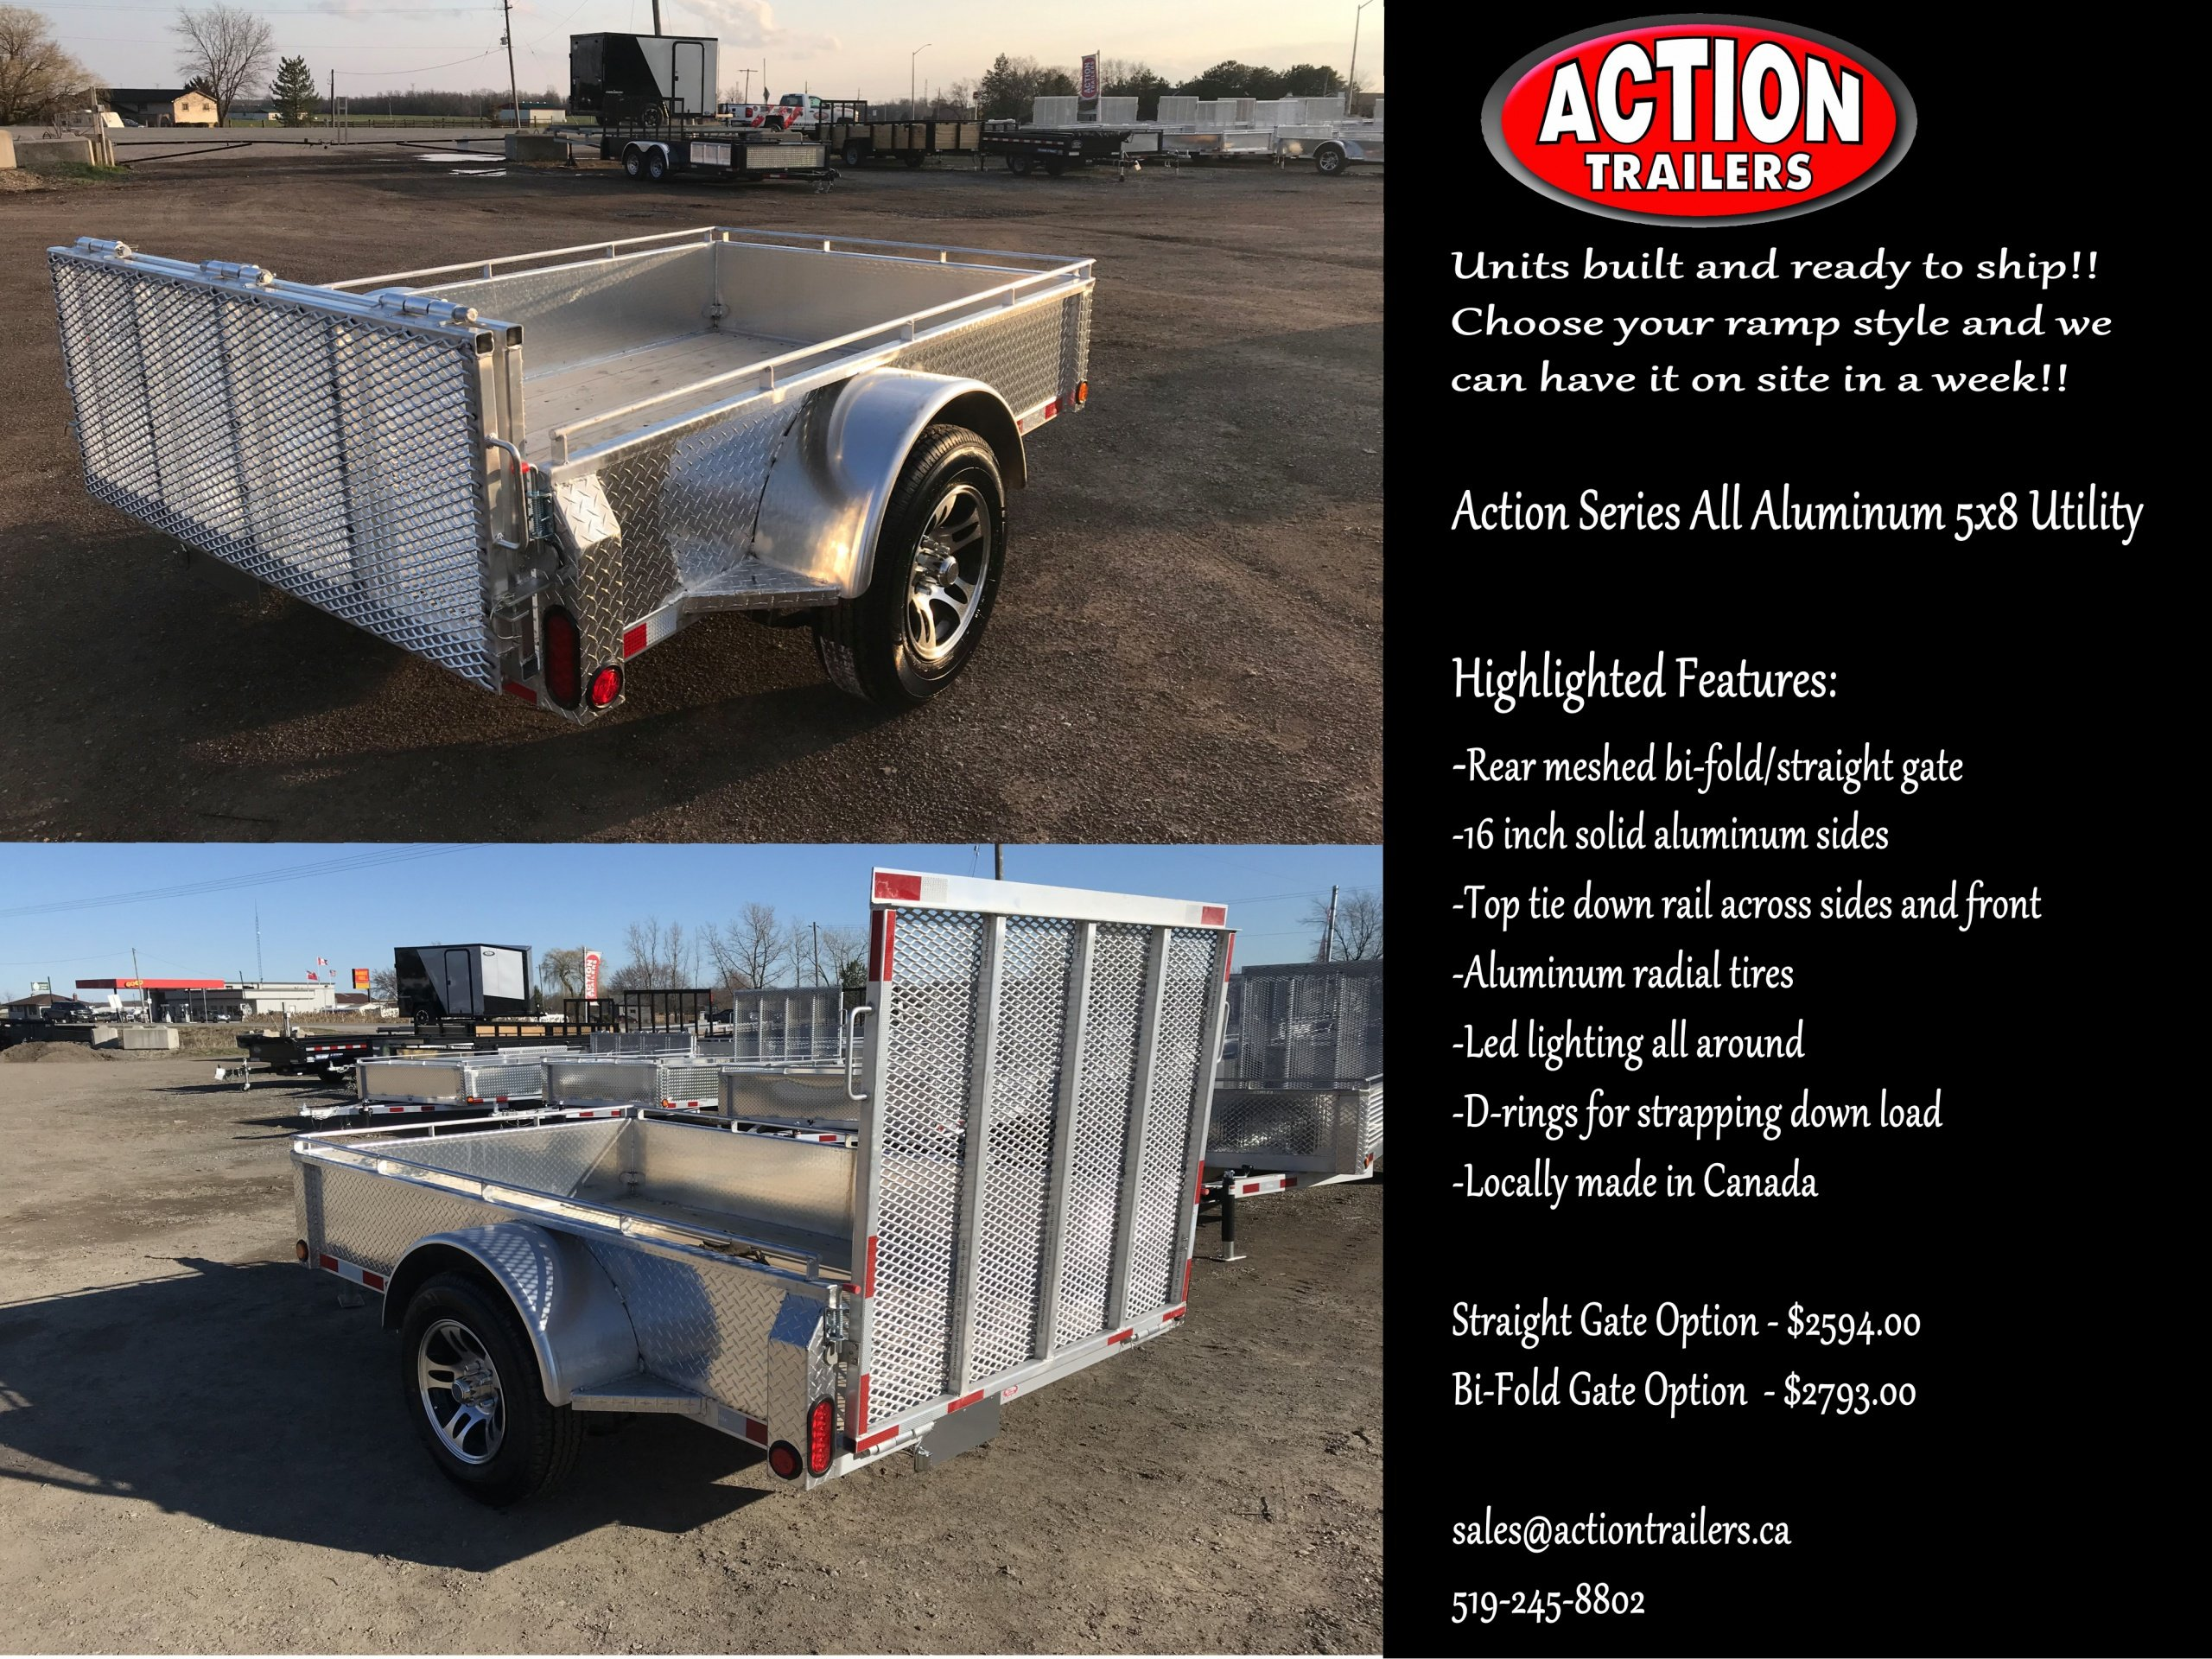 ****5X8 ALL ALUMINUM ACTION SERIES UTILITY TRAILERS ARE BUILT.....YOU PICK THE GATE YOU WANT.....WE GET IT HERE IN A WEEK!!**** PRICING STARTING AT $2594